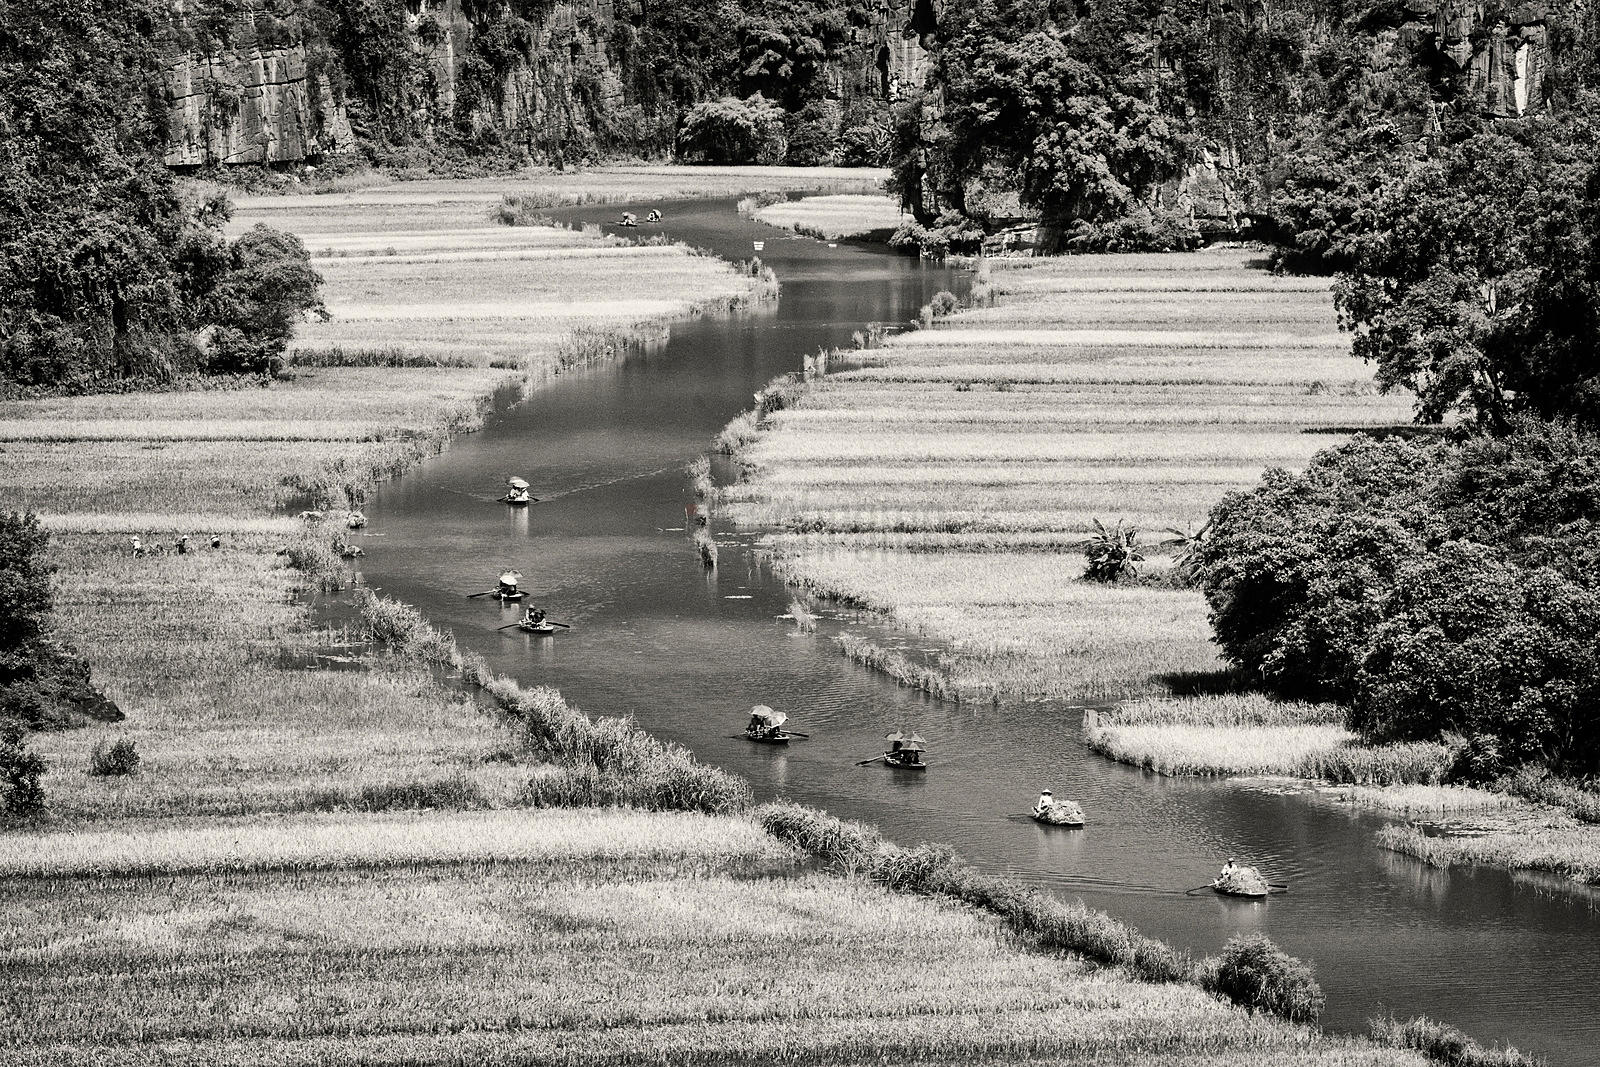 Harvested Rice and Tourists Coming Down a Channel in the Pice Paddies